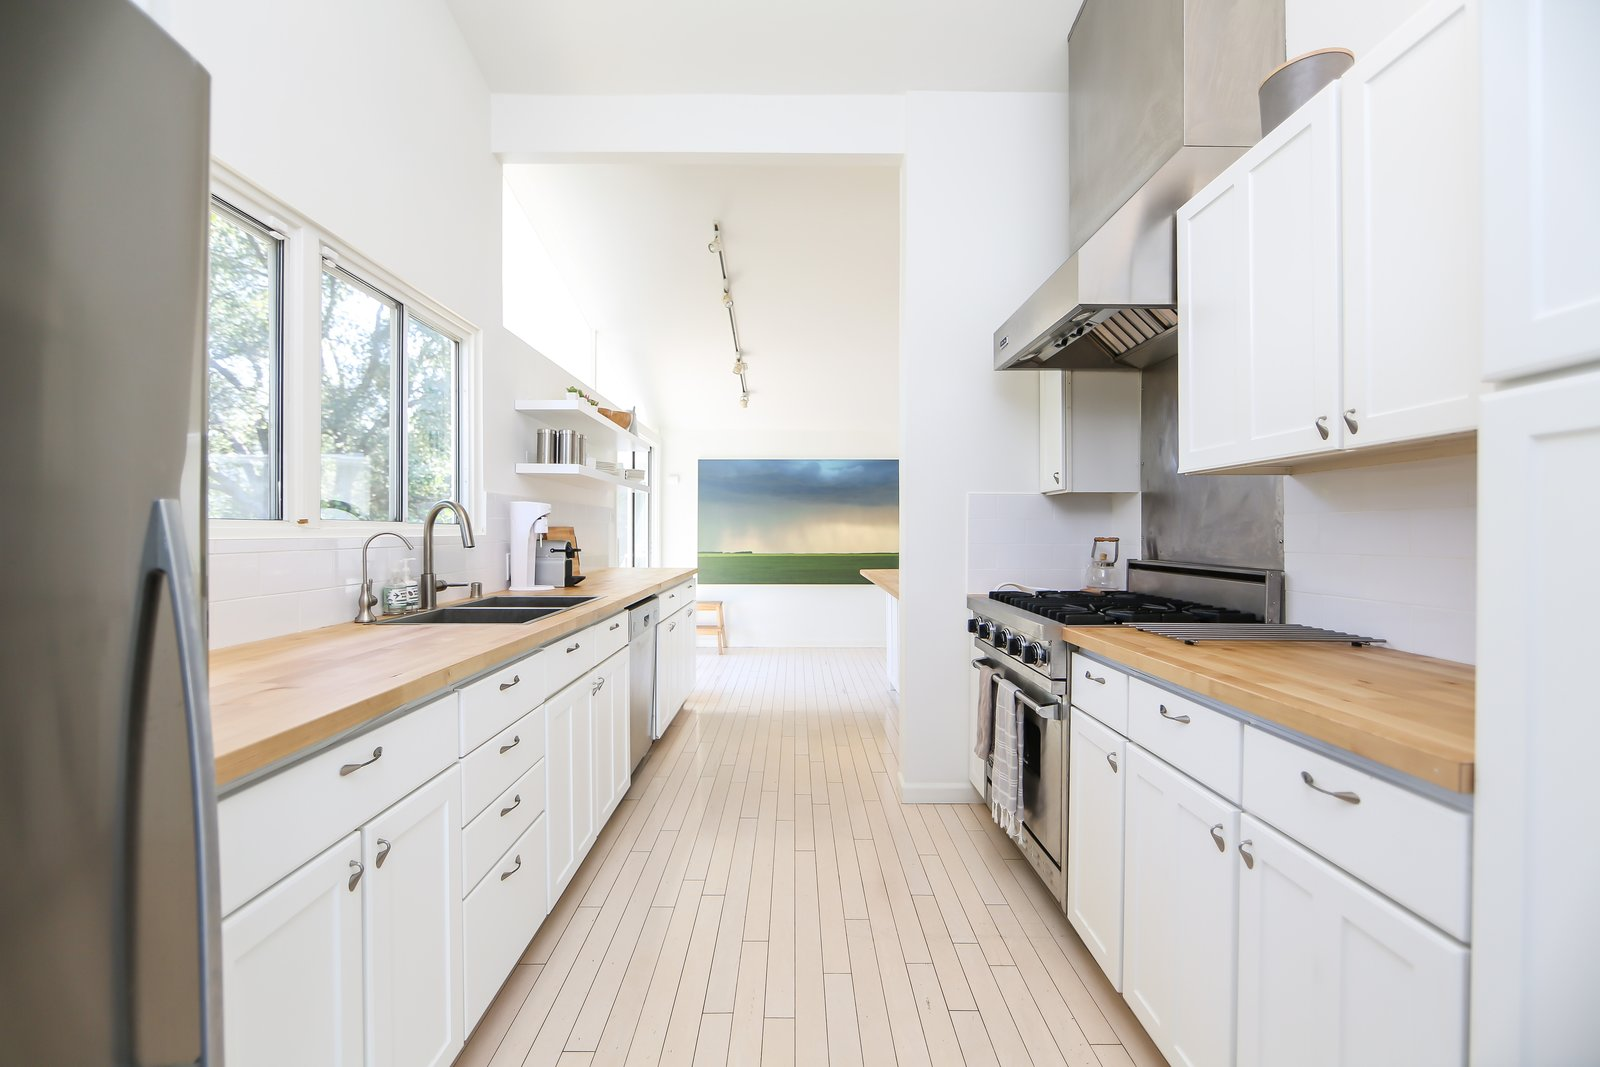 The original wood flooring remains in the kitchen and living rooms, while the kitchen was renovated with new surfaces and appliances.  Photo 5 of 10 in If You Crave Bright, Light-Filled Spaces, This Midcentury Home For Sale Could Be the One